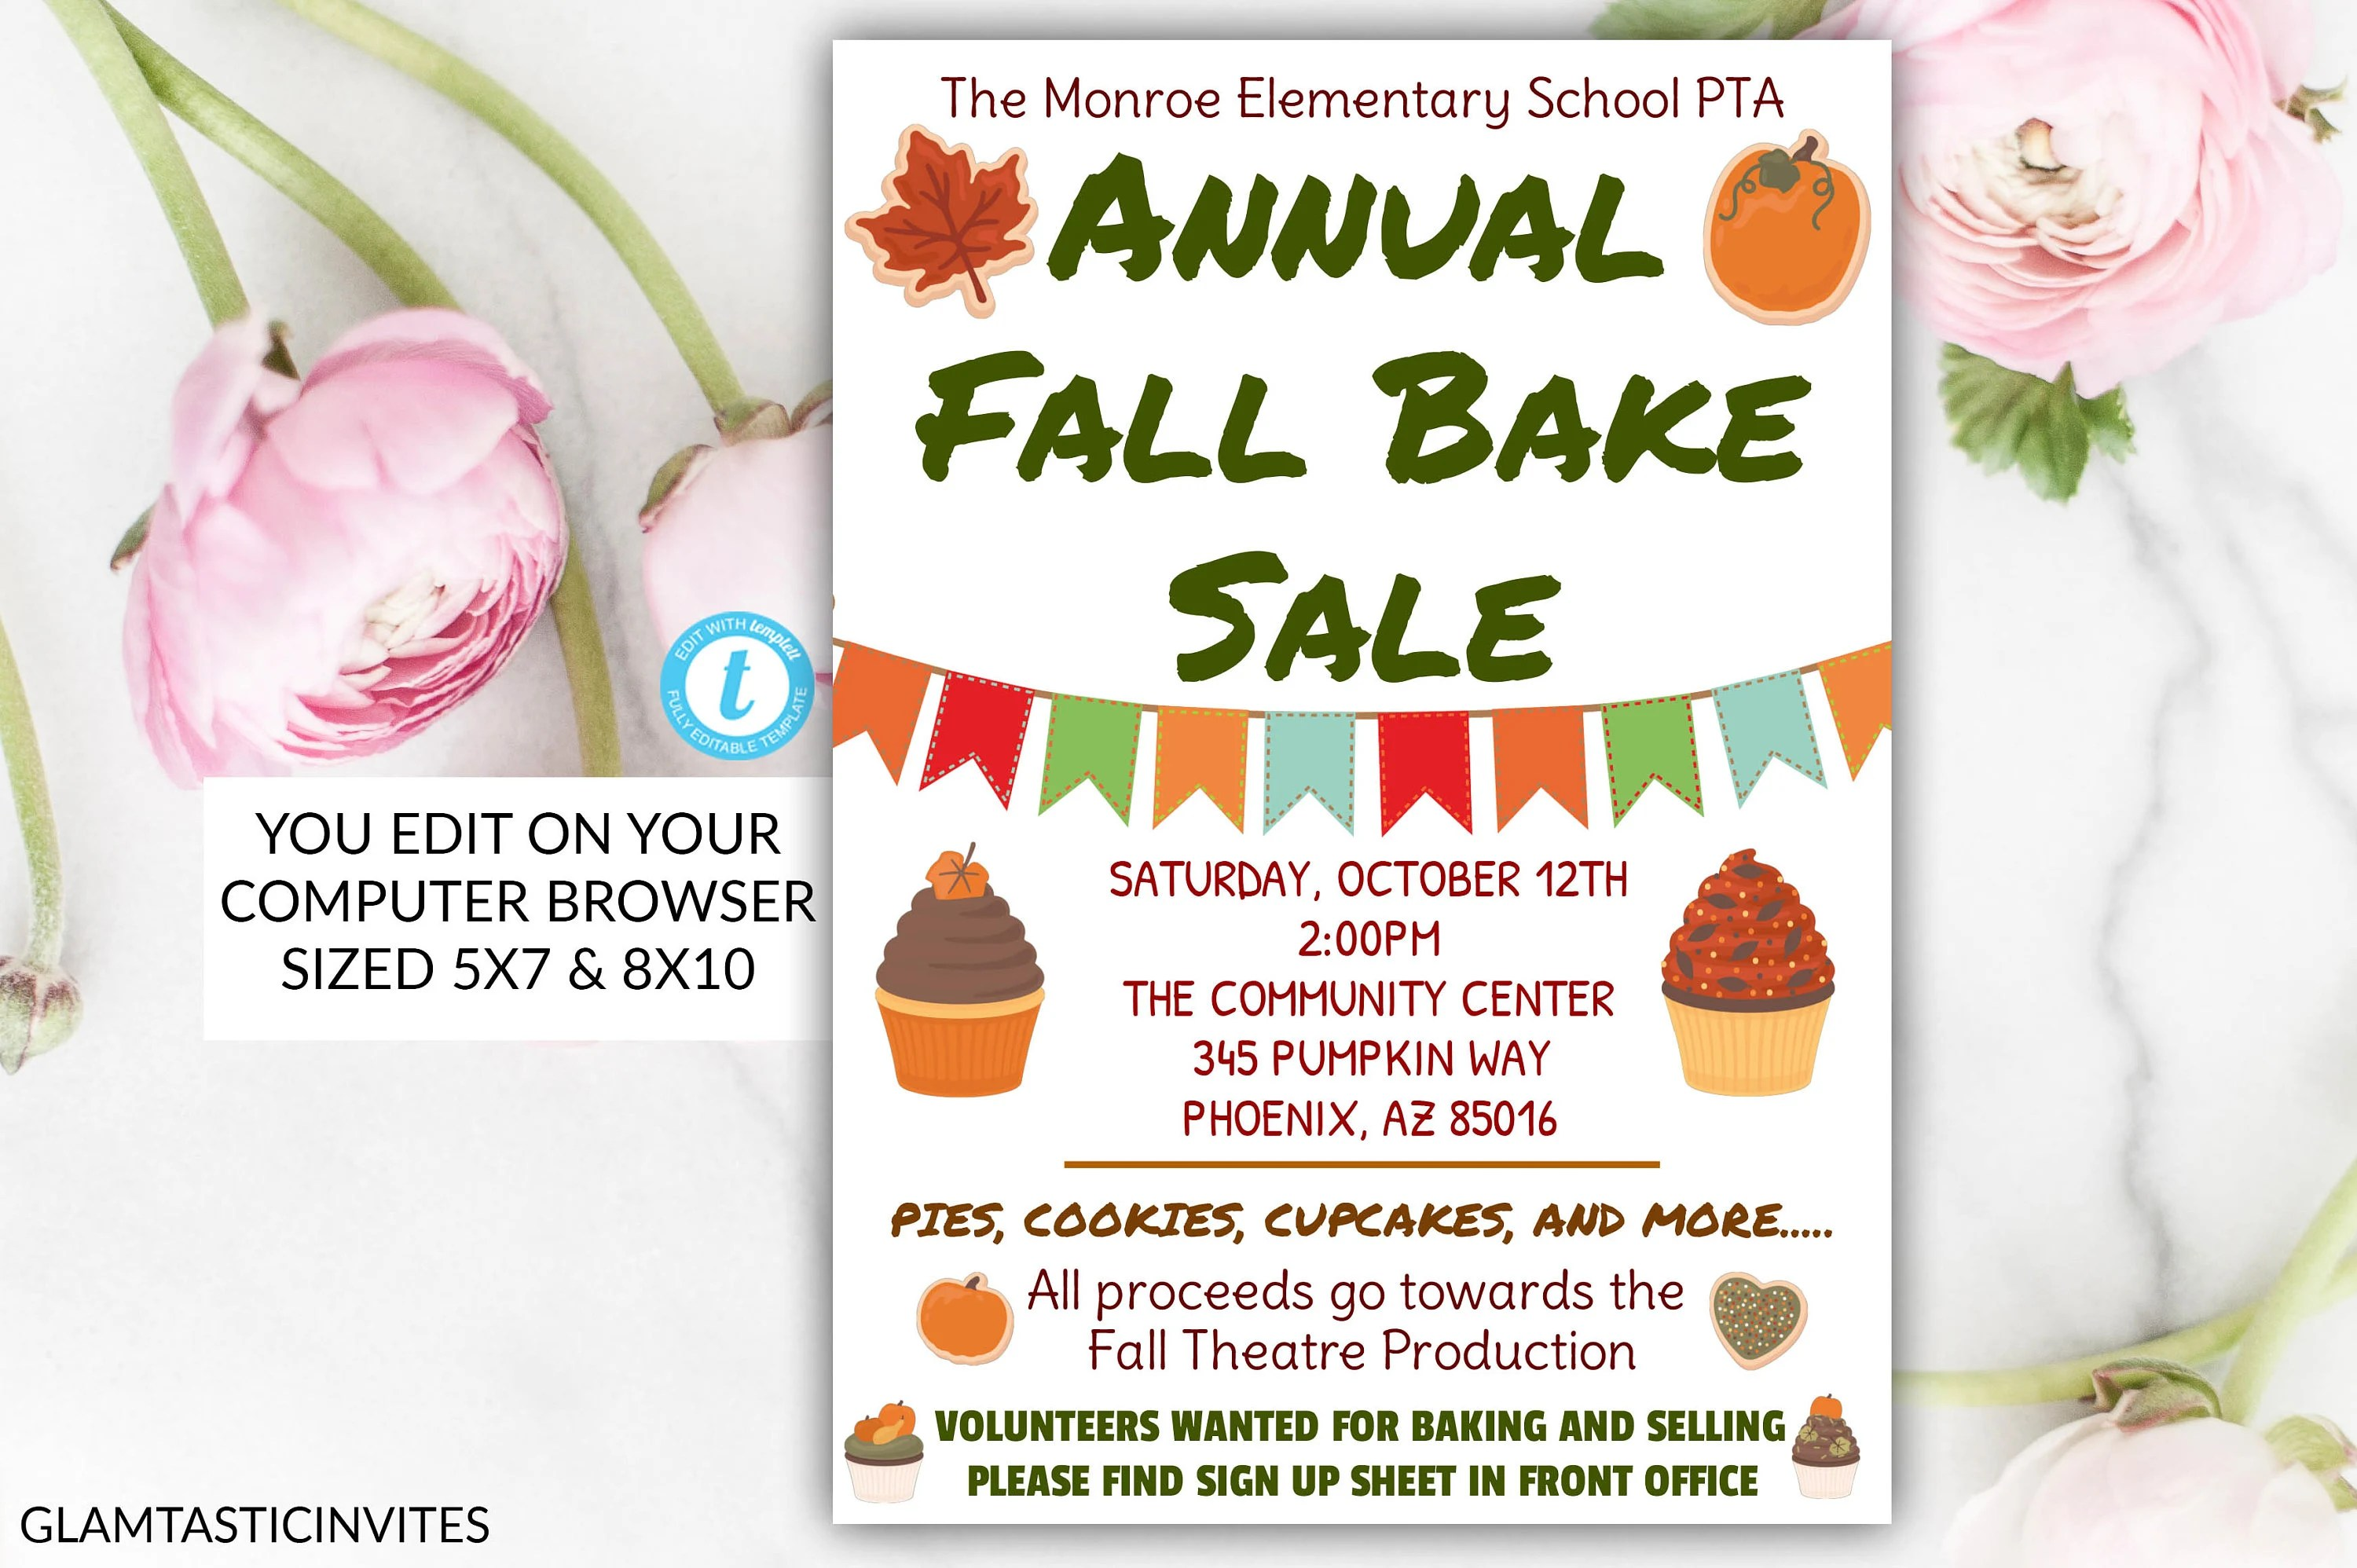 Annual Fall Bake Sale Flyer Poster Template, Printable PTA, PTO